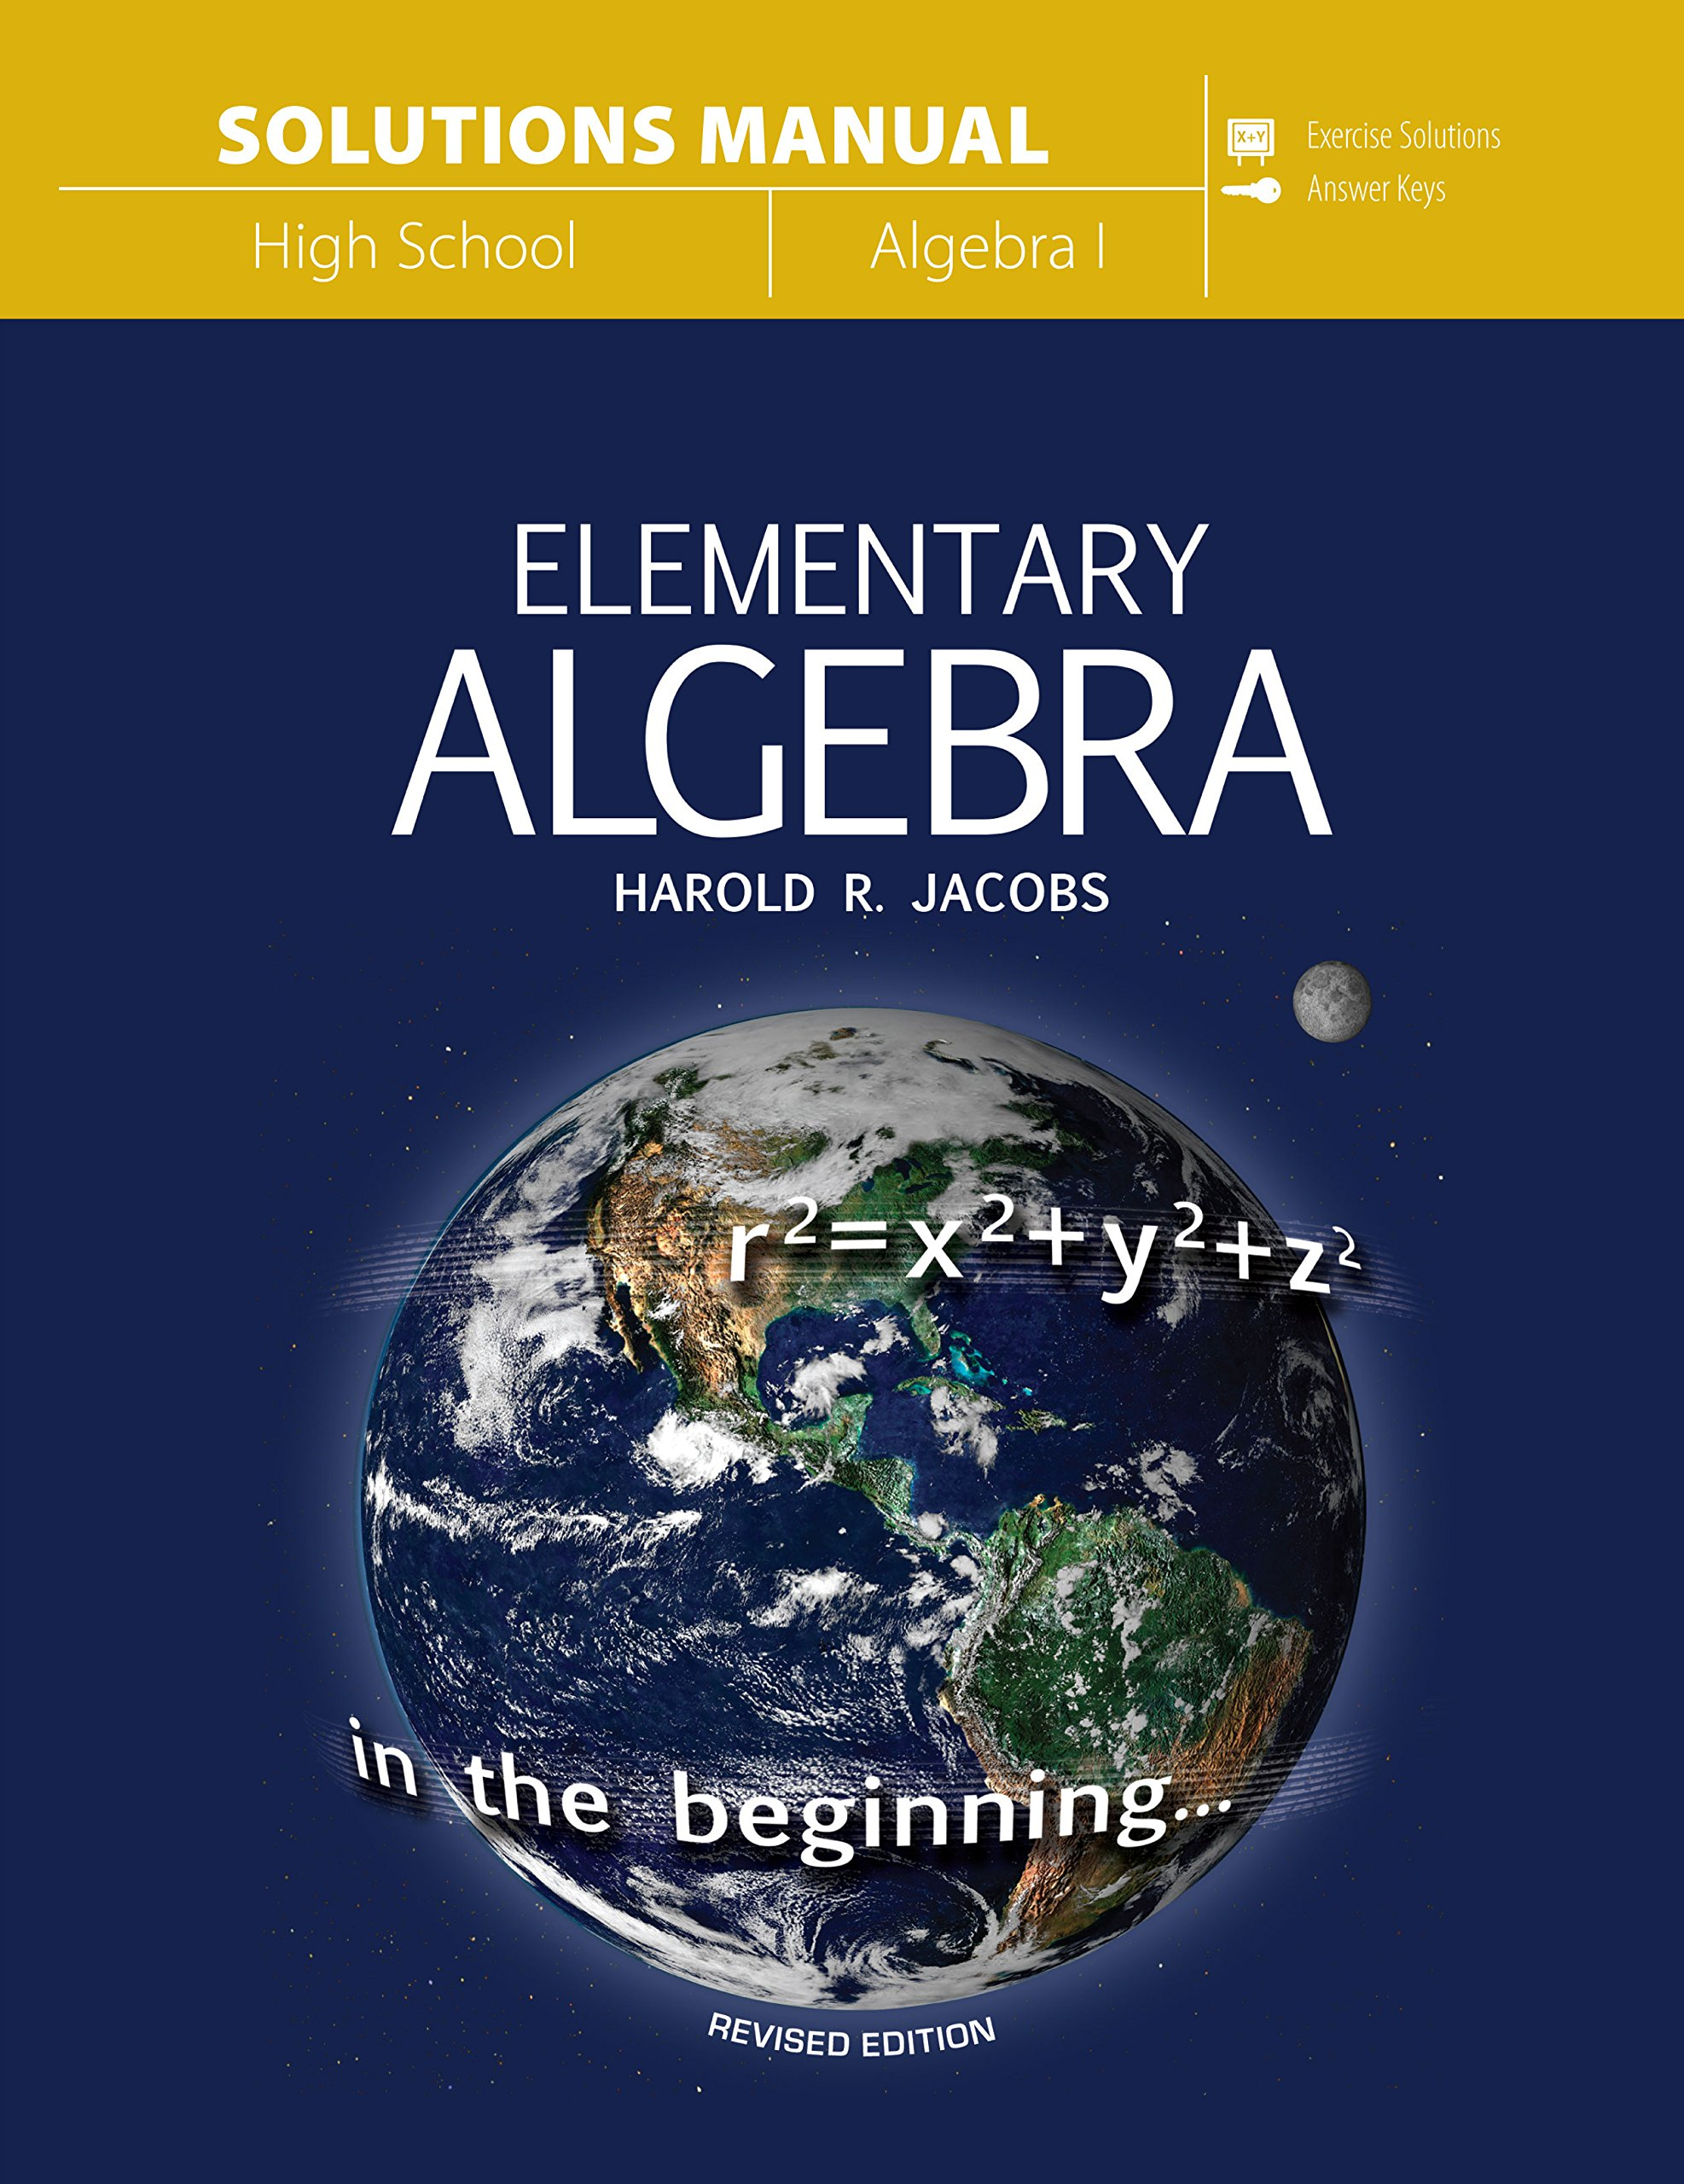 Elementary Algebra (Solutions Manual): Harold R Jacobs: 9780890519875:  Amazon.com: Books